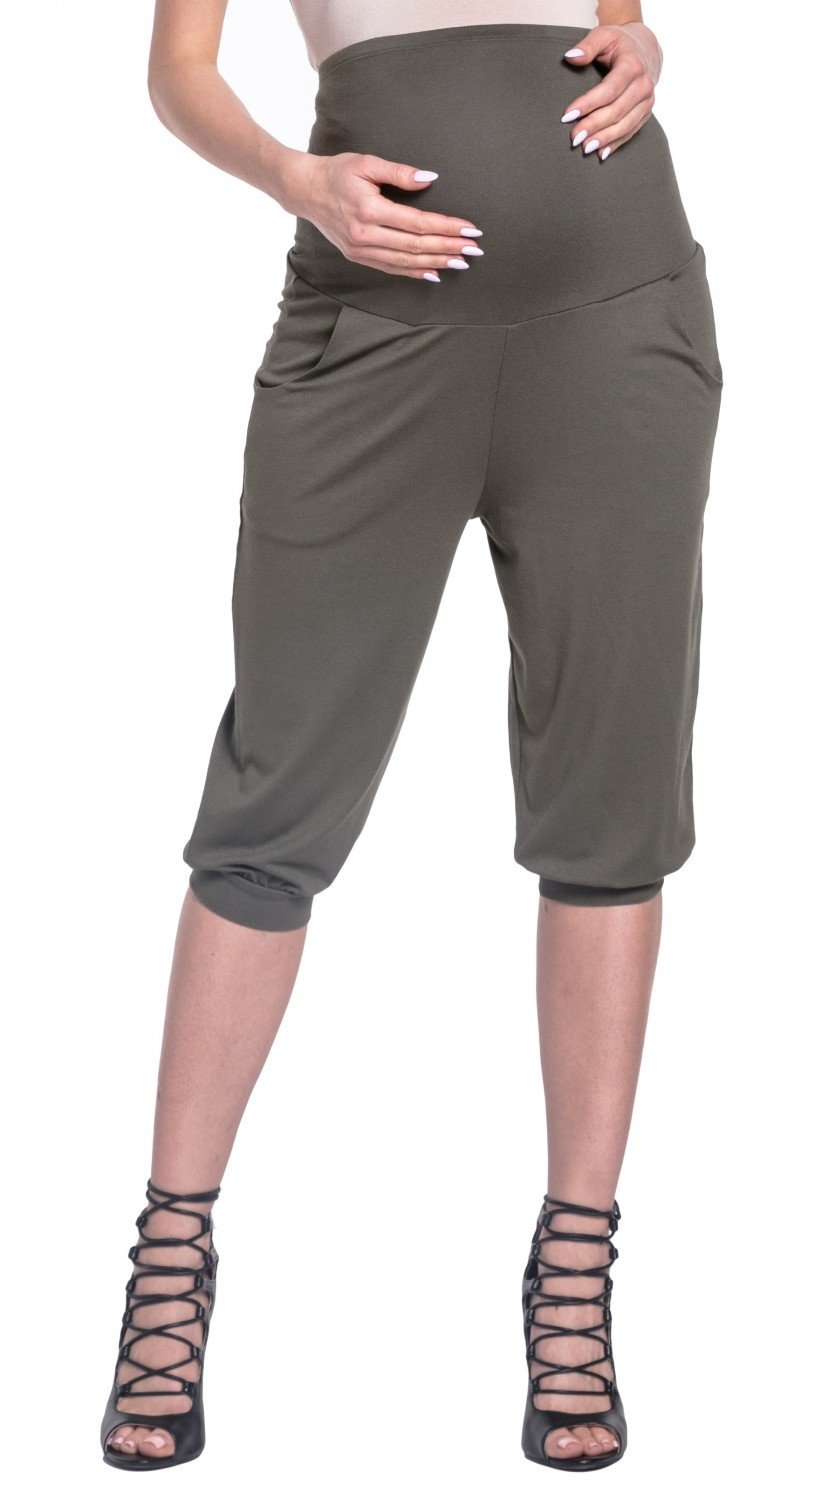 Happy Mama Womens Elastic Maternity Capri Pants With Stretch Waistband. 665p (Khaki, US 2, S)